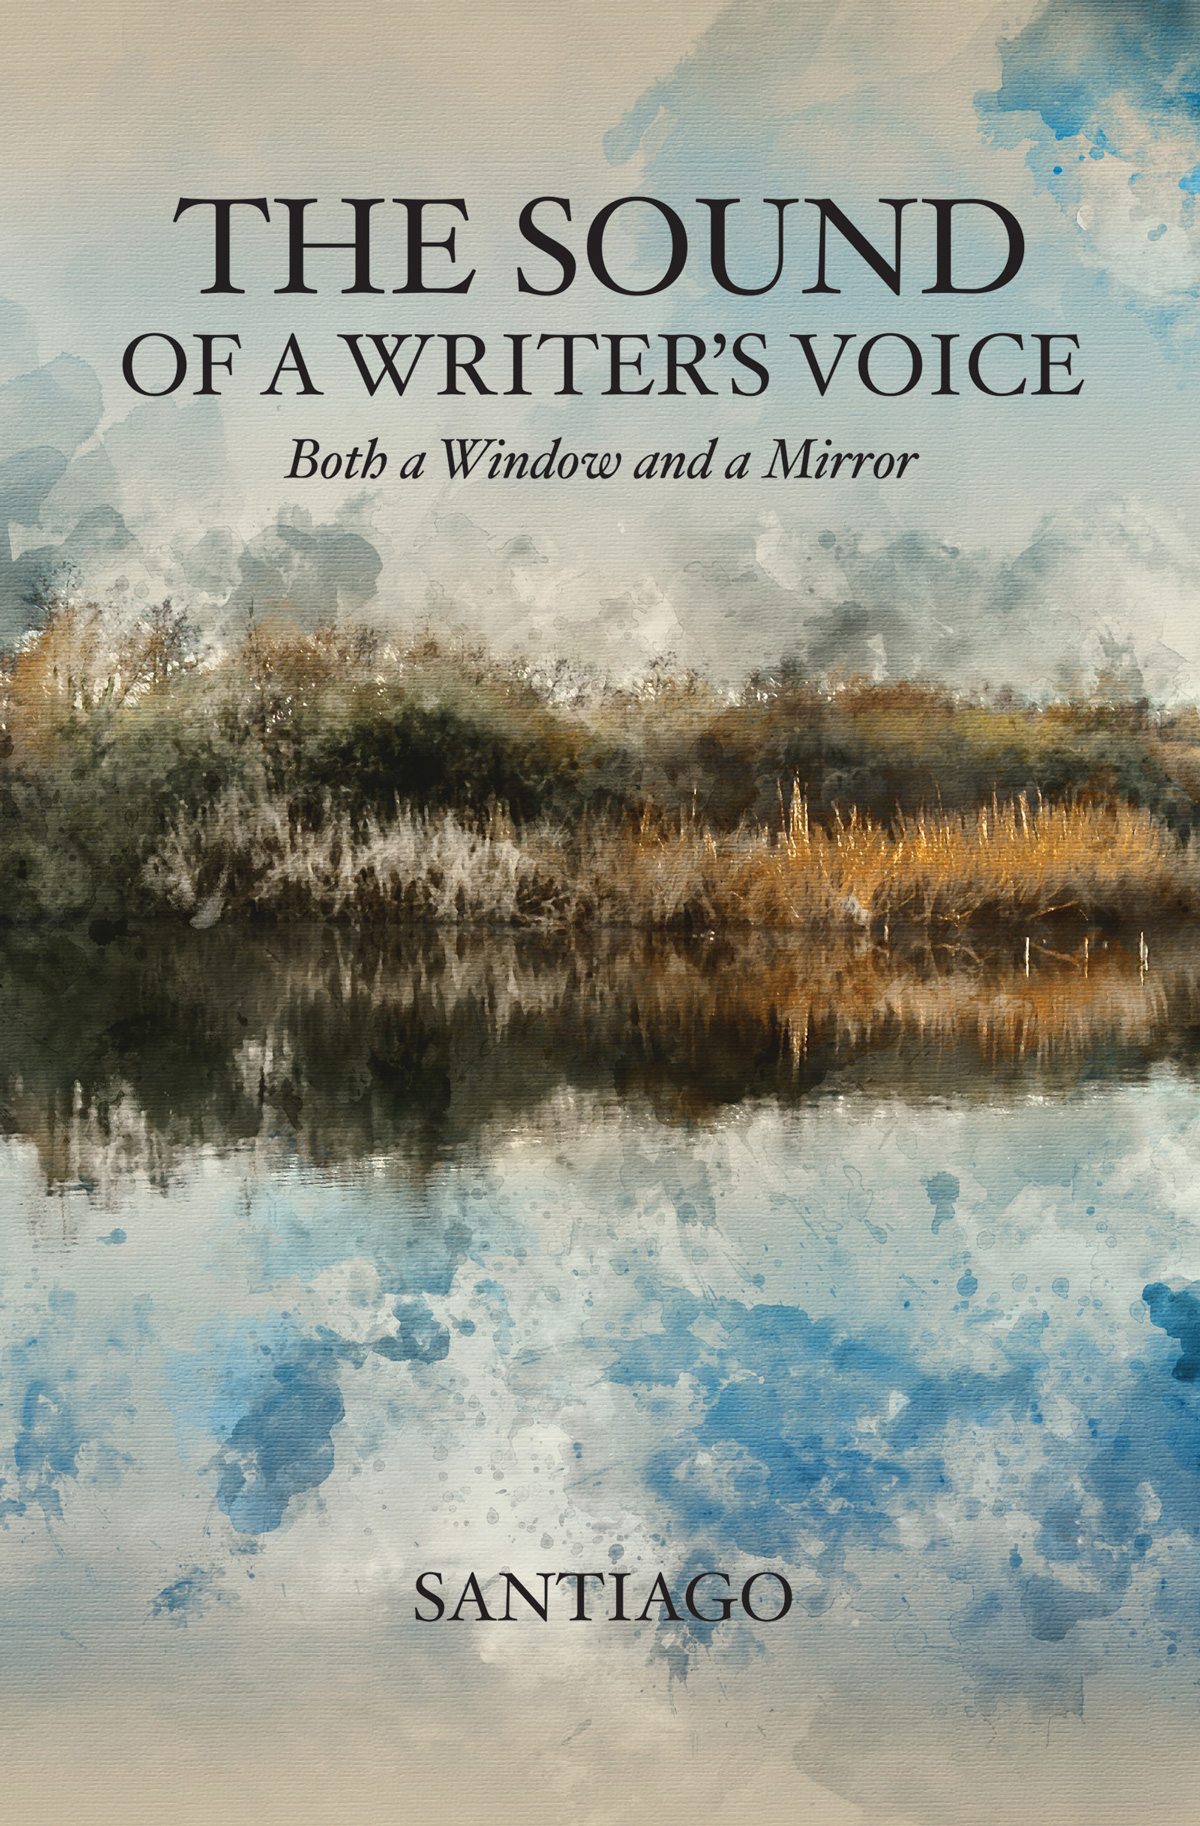 The Sound of a Writer's Voice